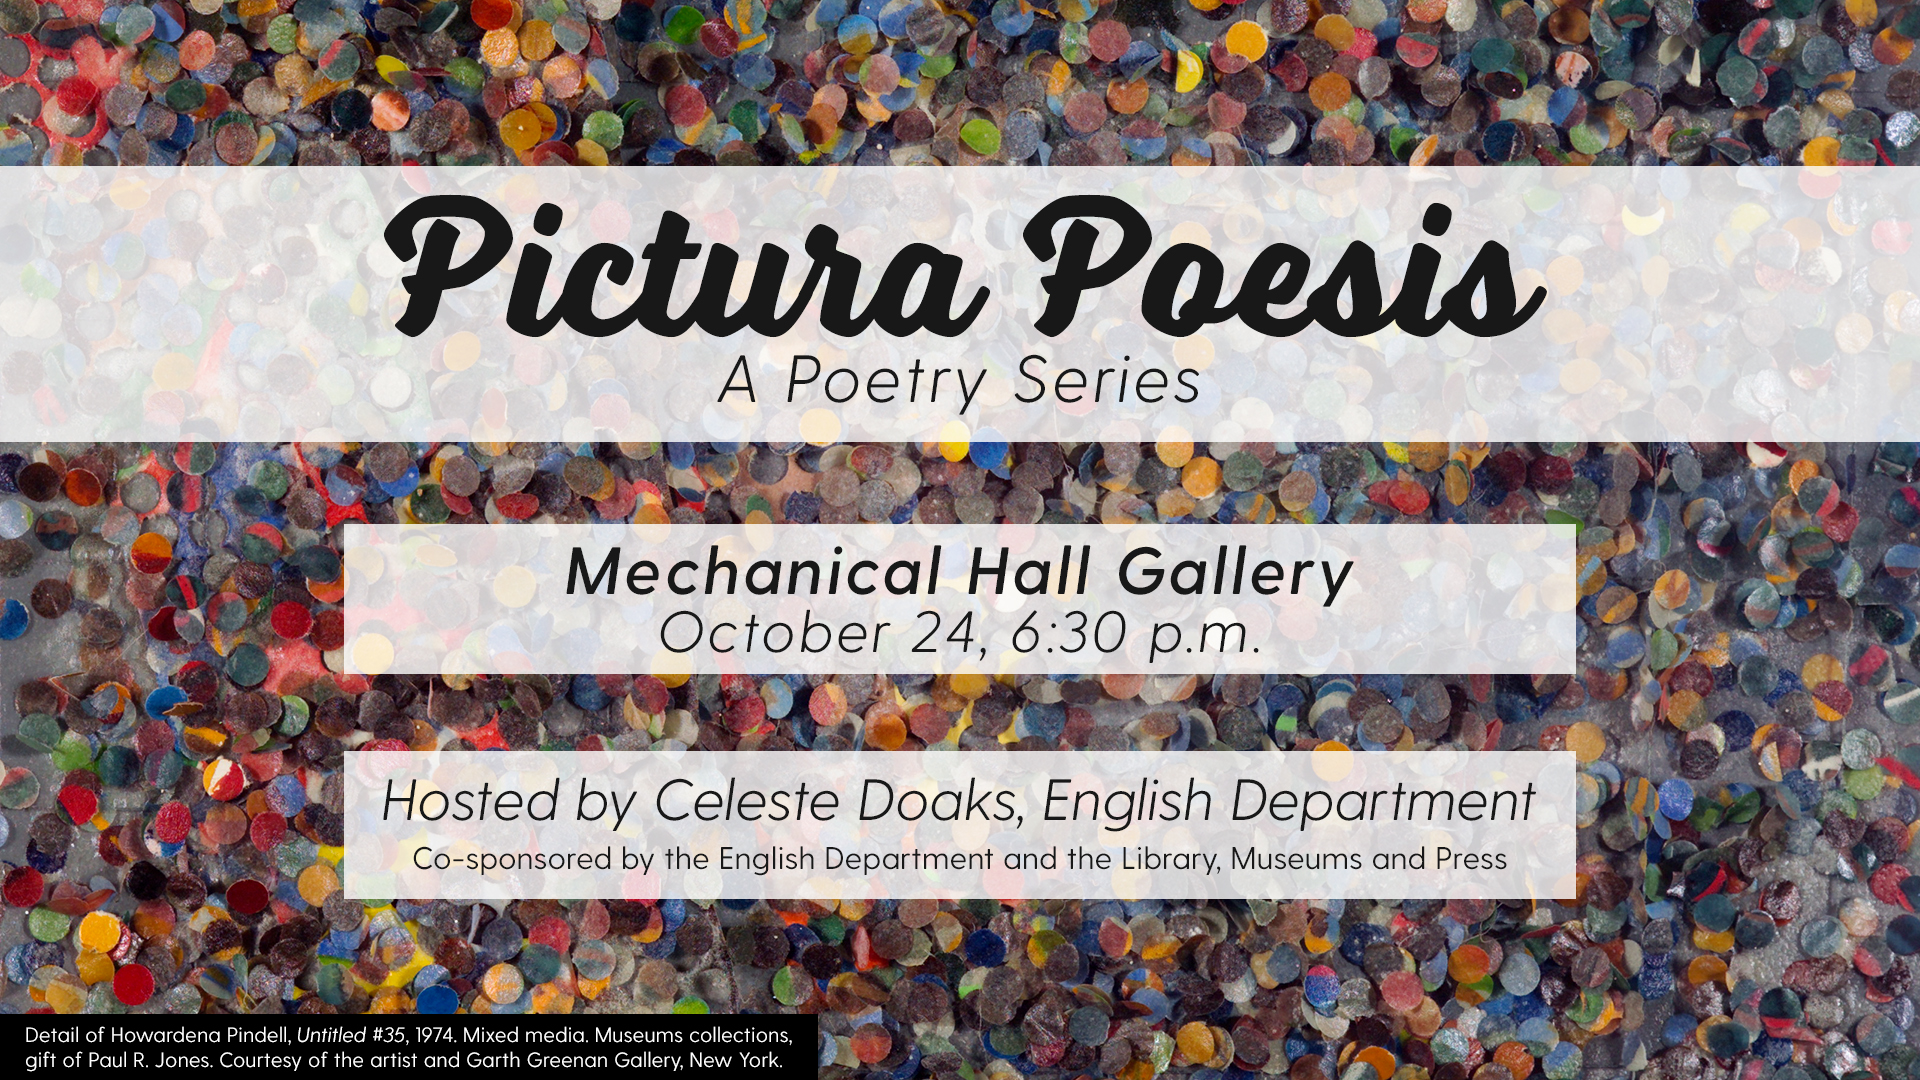 Pictura Poesis: A Poetry Series